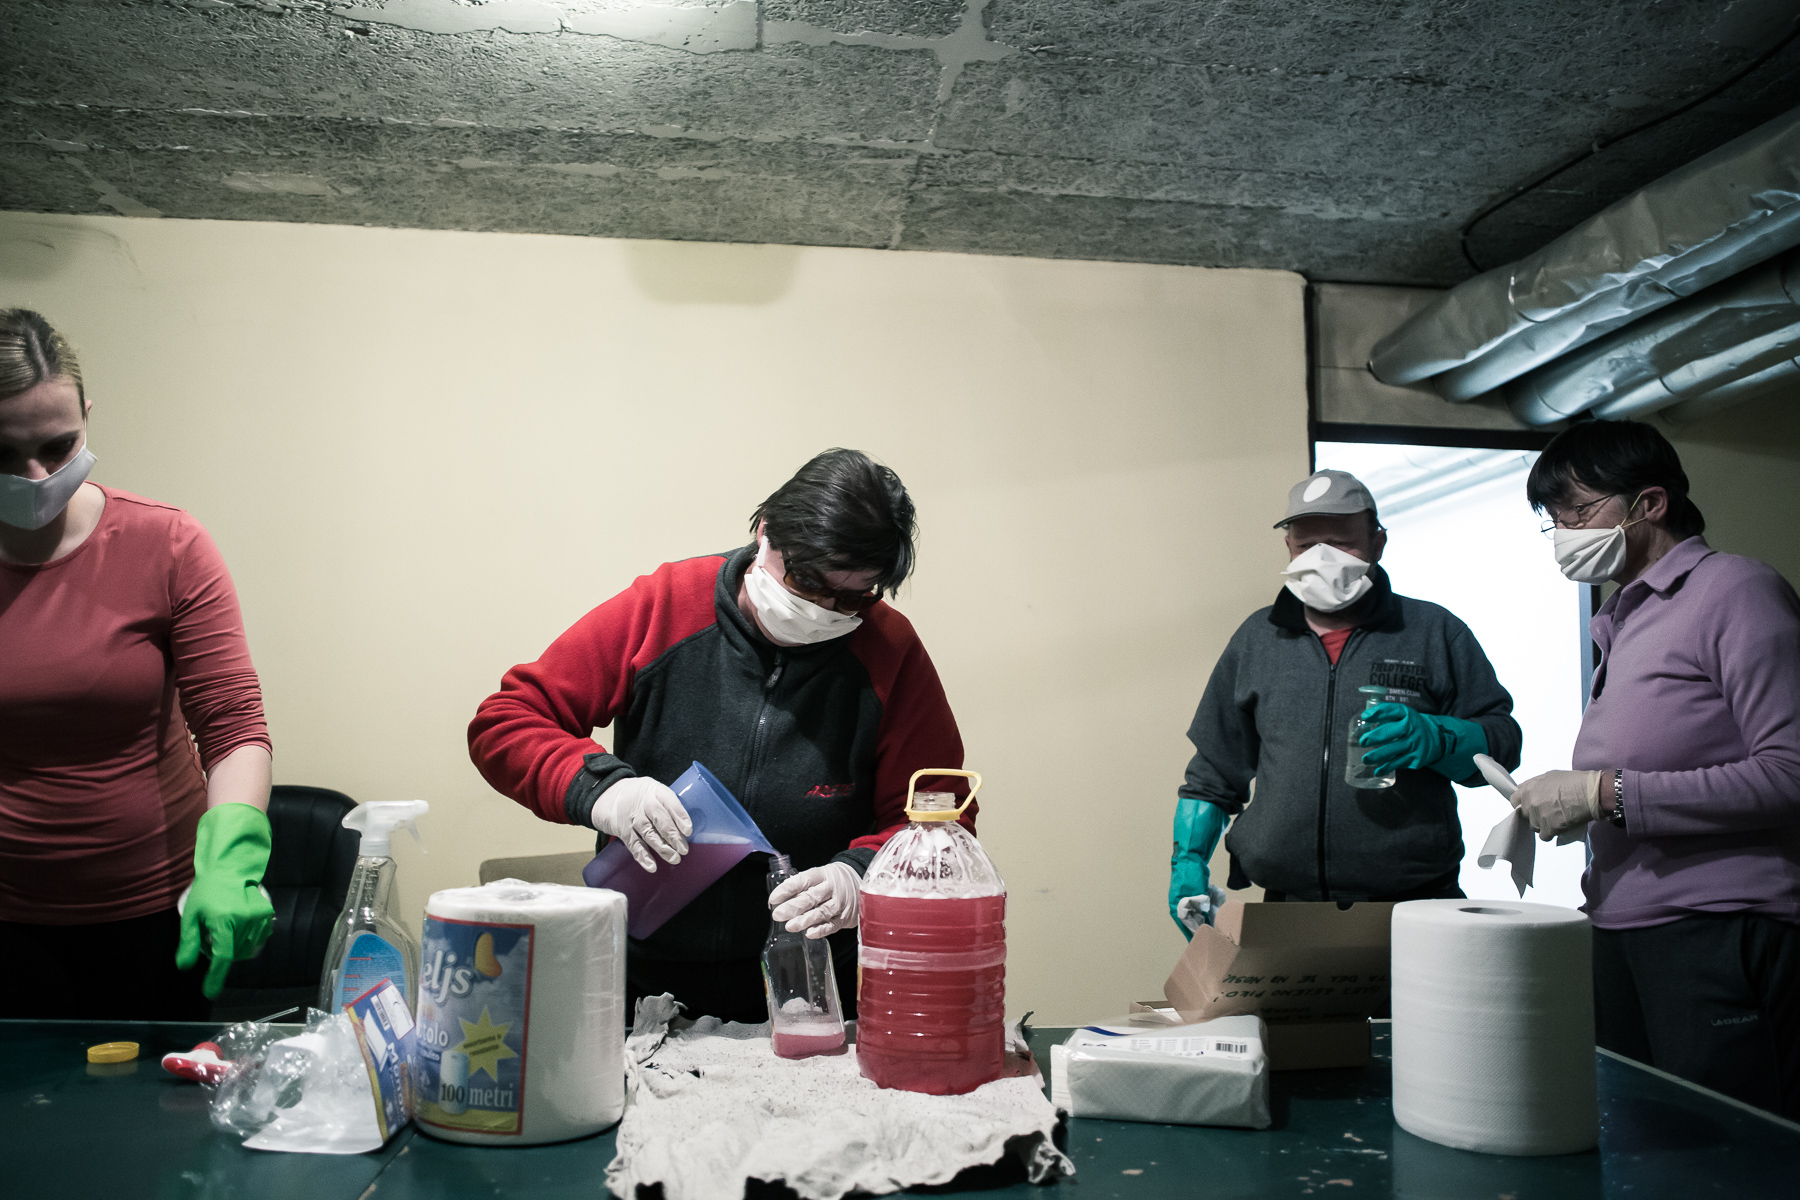 Residents of an apartment building in Kranj, Slovenia, prepare disinfectant solutions and materials during mandatory daily building disinfection on April 2, 2020.